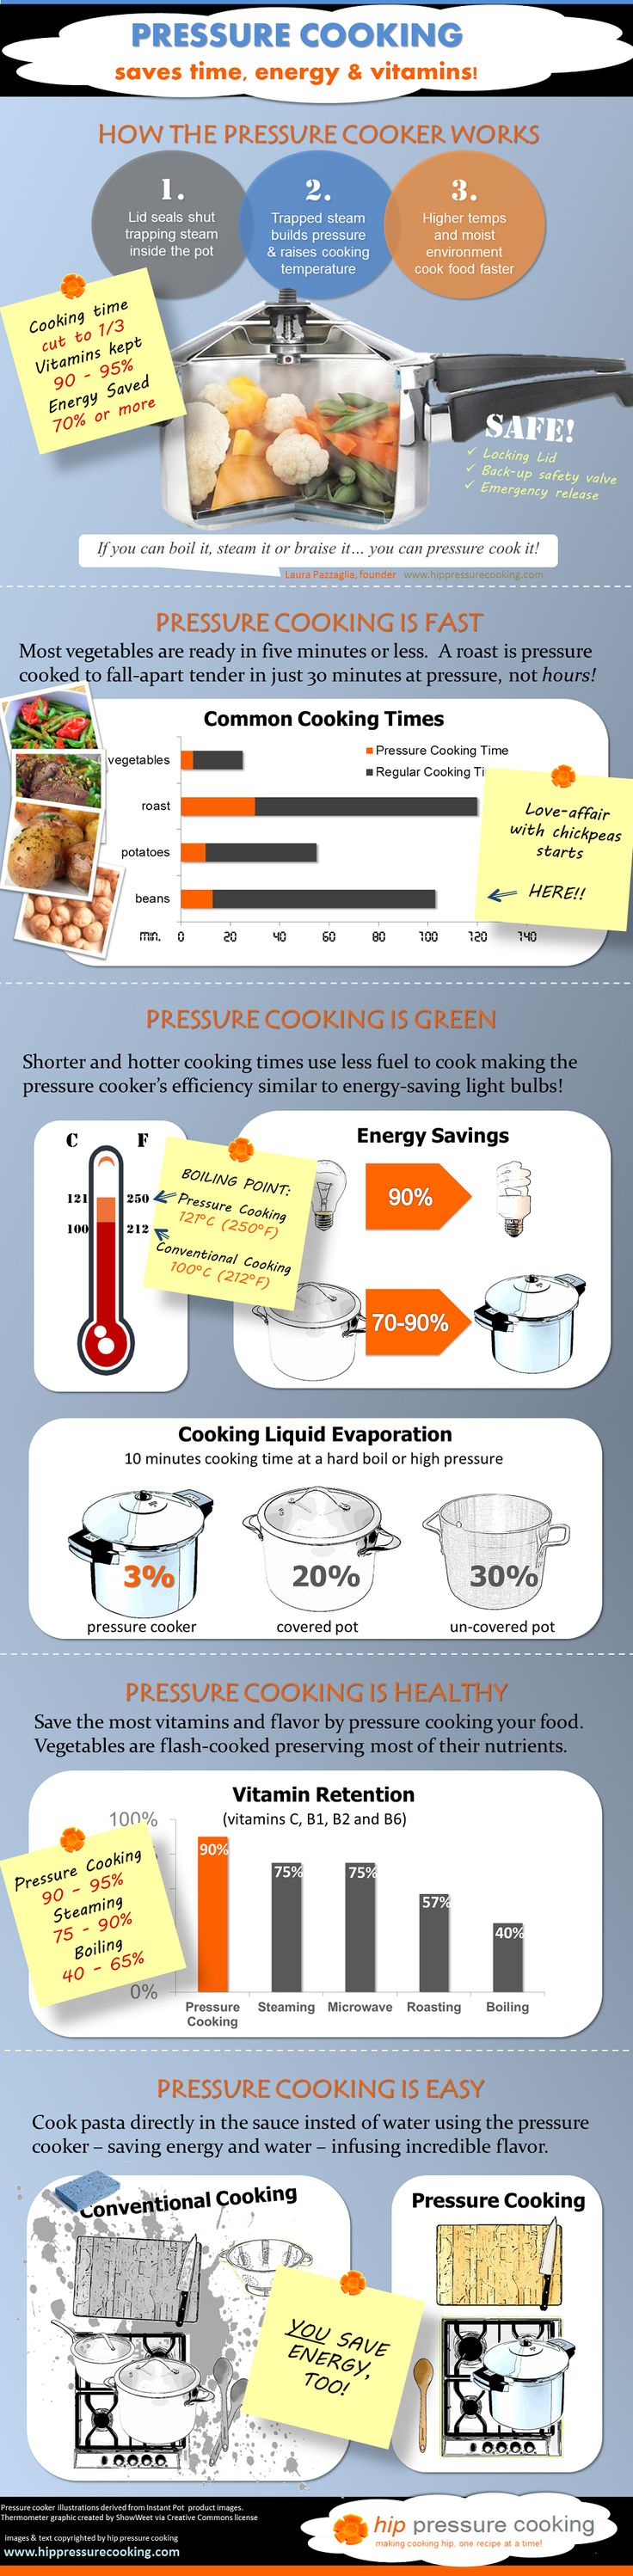 Why pressure cooking is AWESOME!! (please share with the un-enlightened)